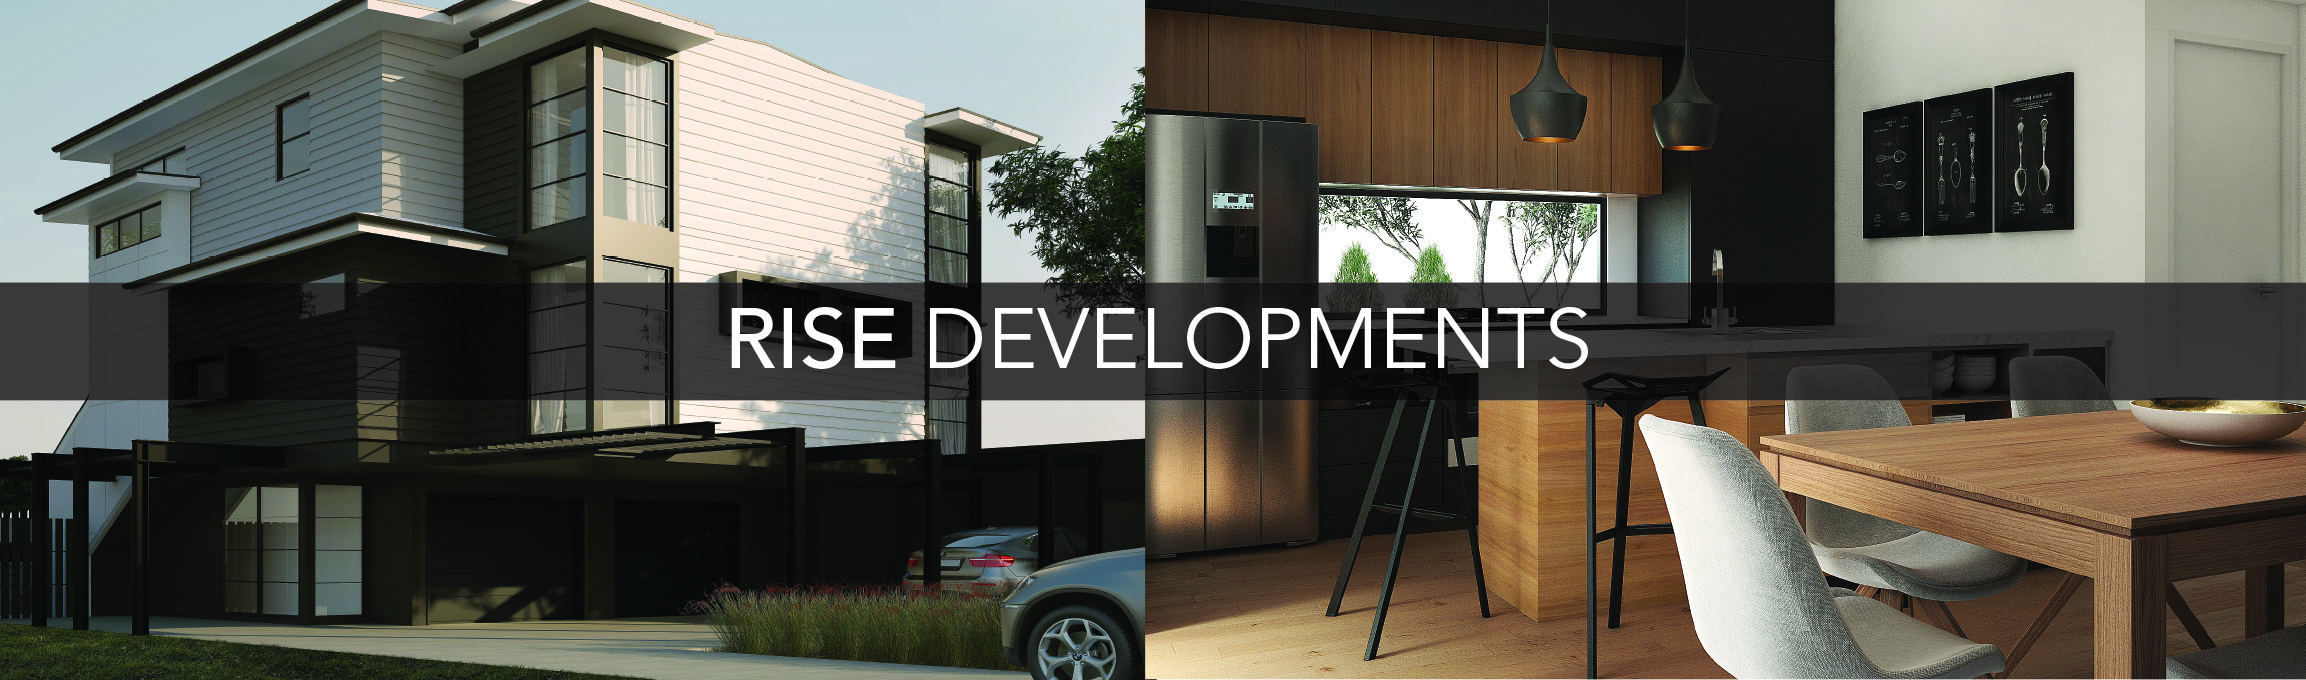 Rise Developments Banner.jpg